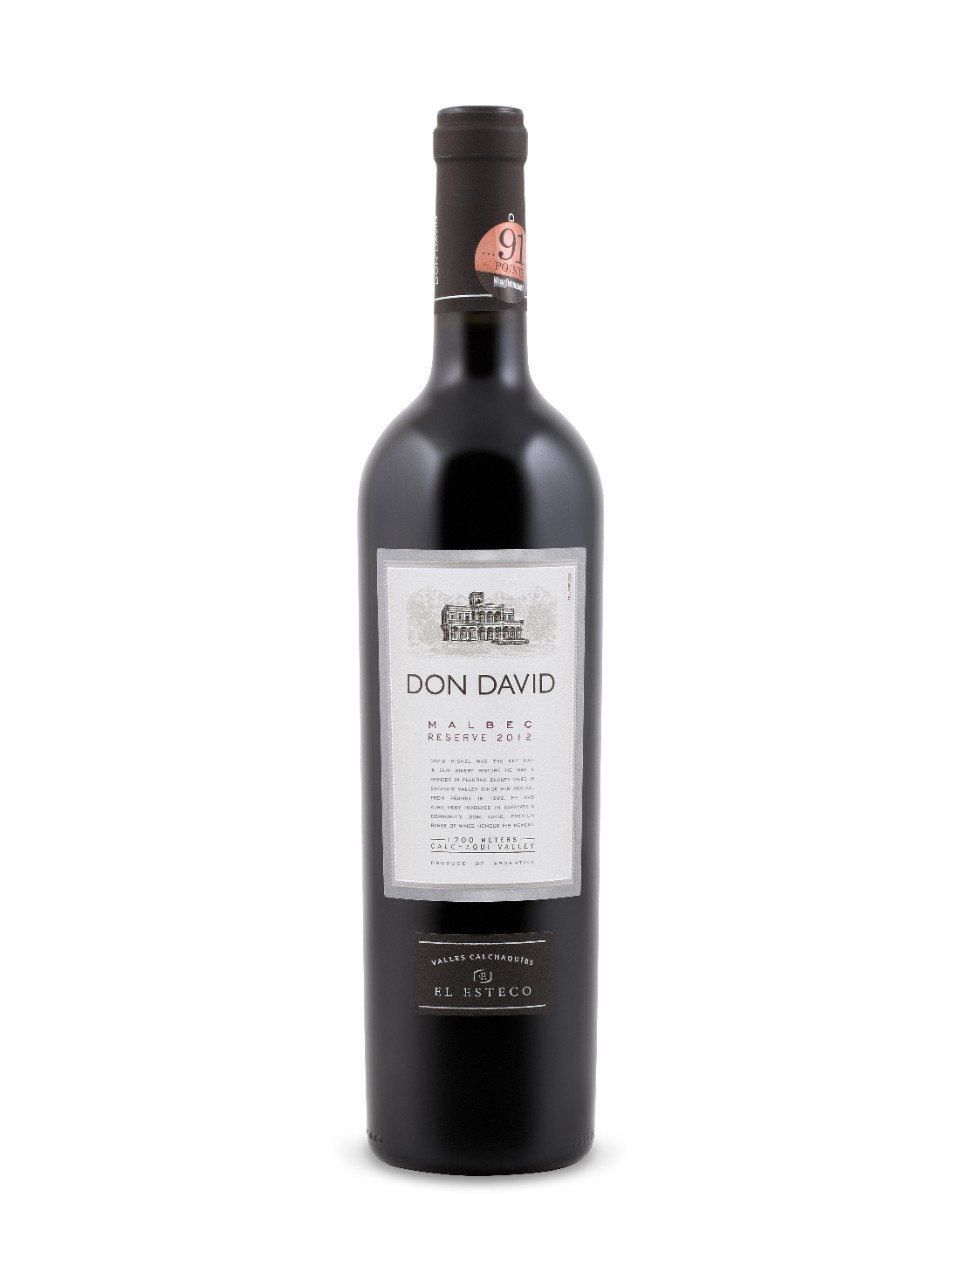 Don David Reserve Malbec 2012